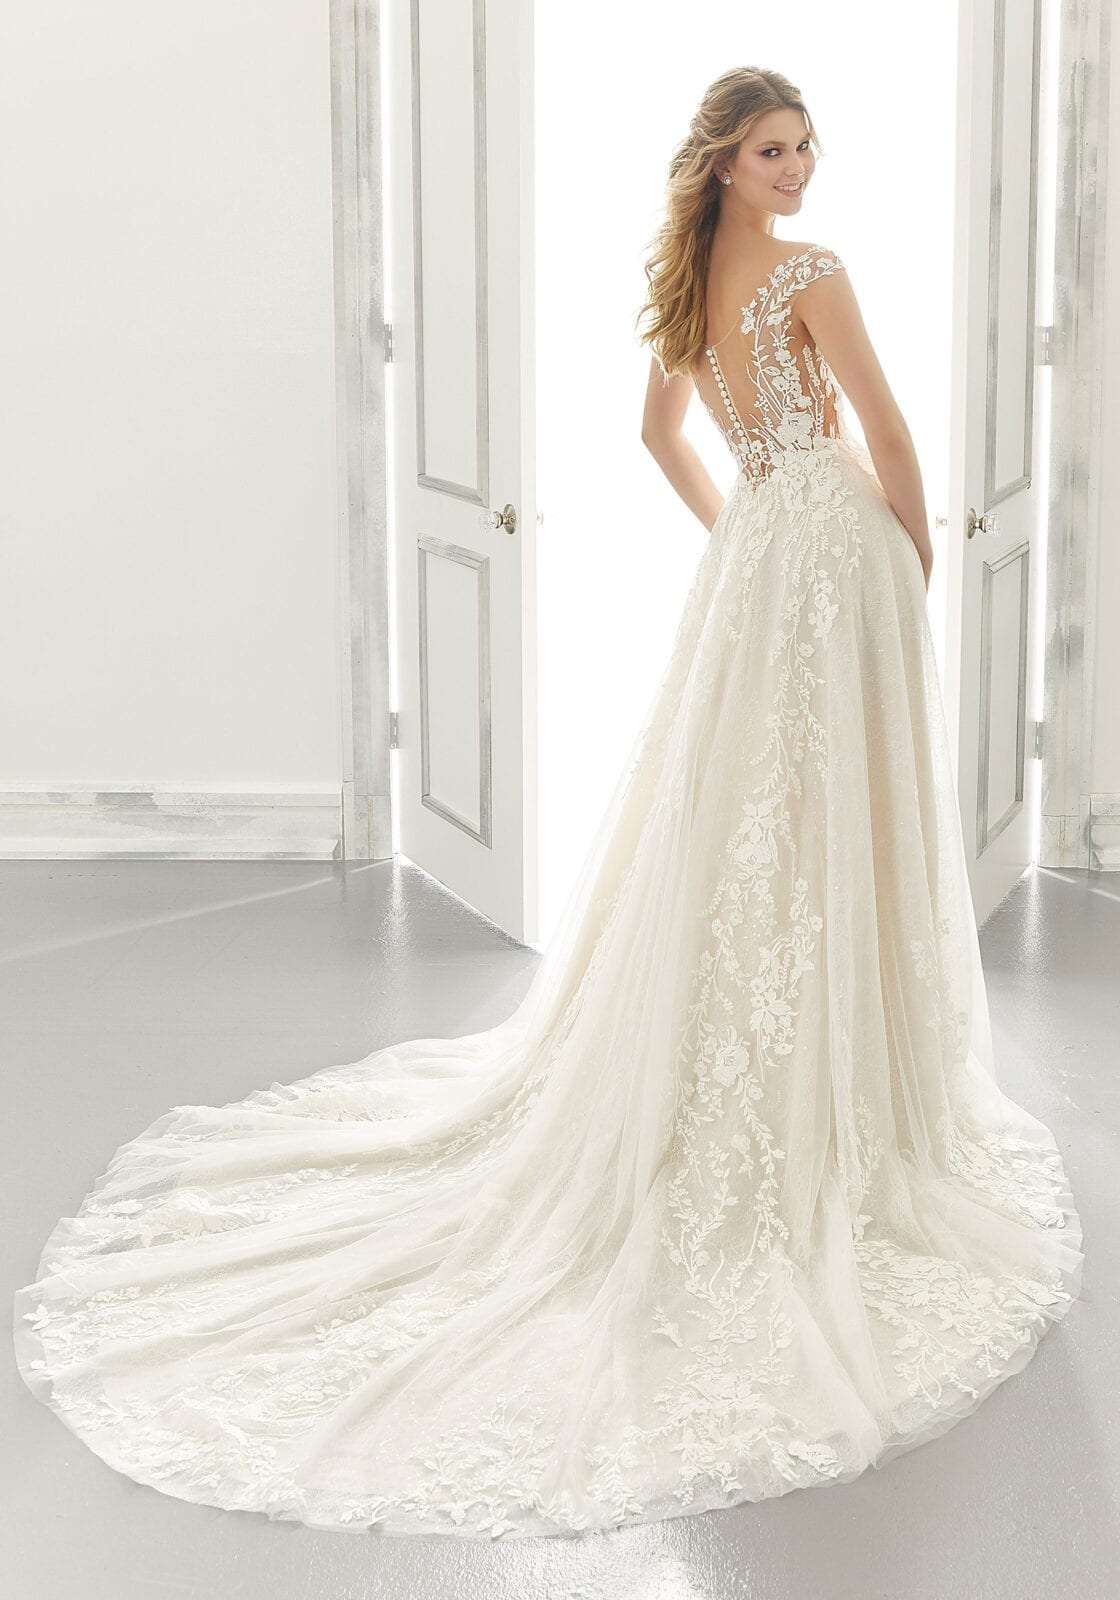 Long train with lace appliques wedding dress